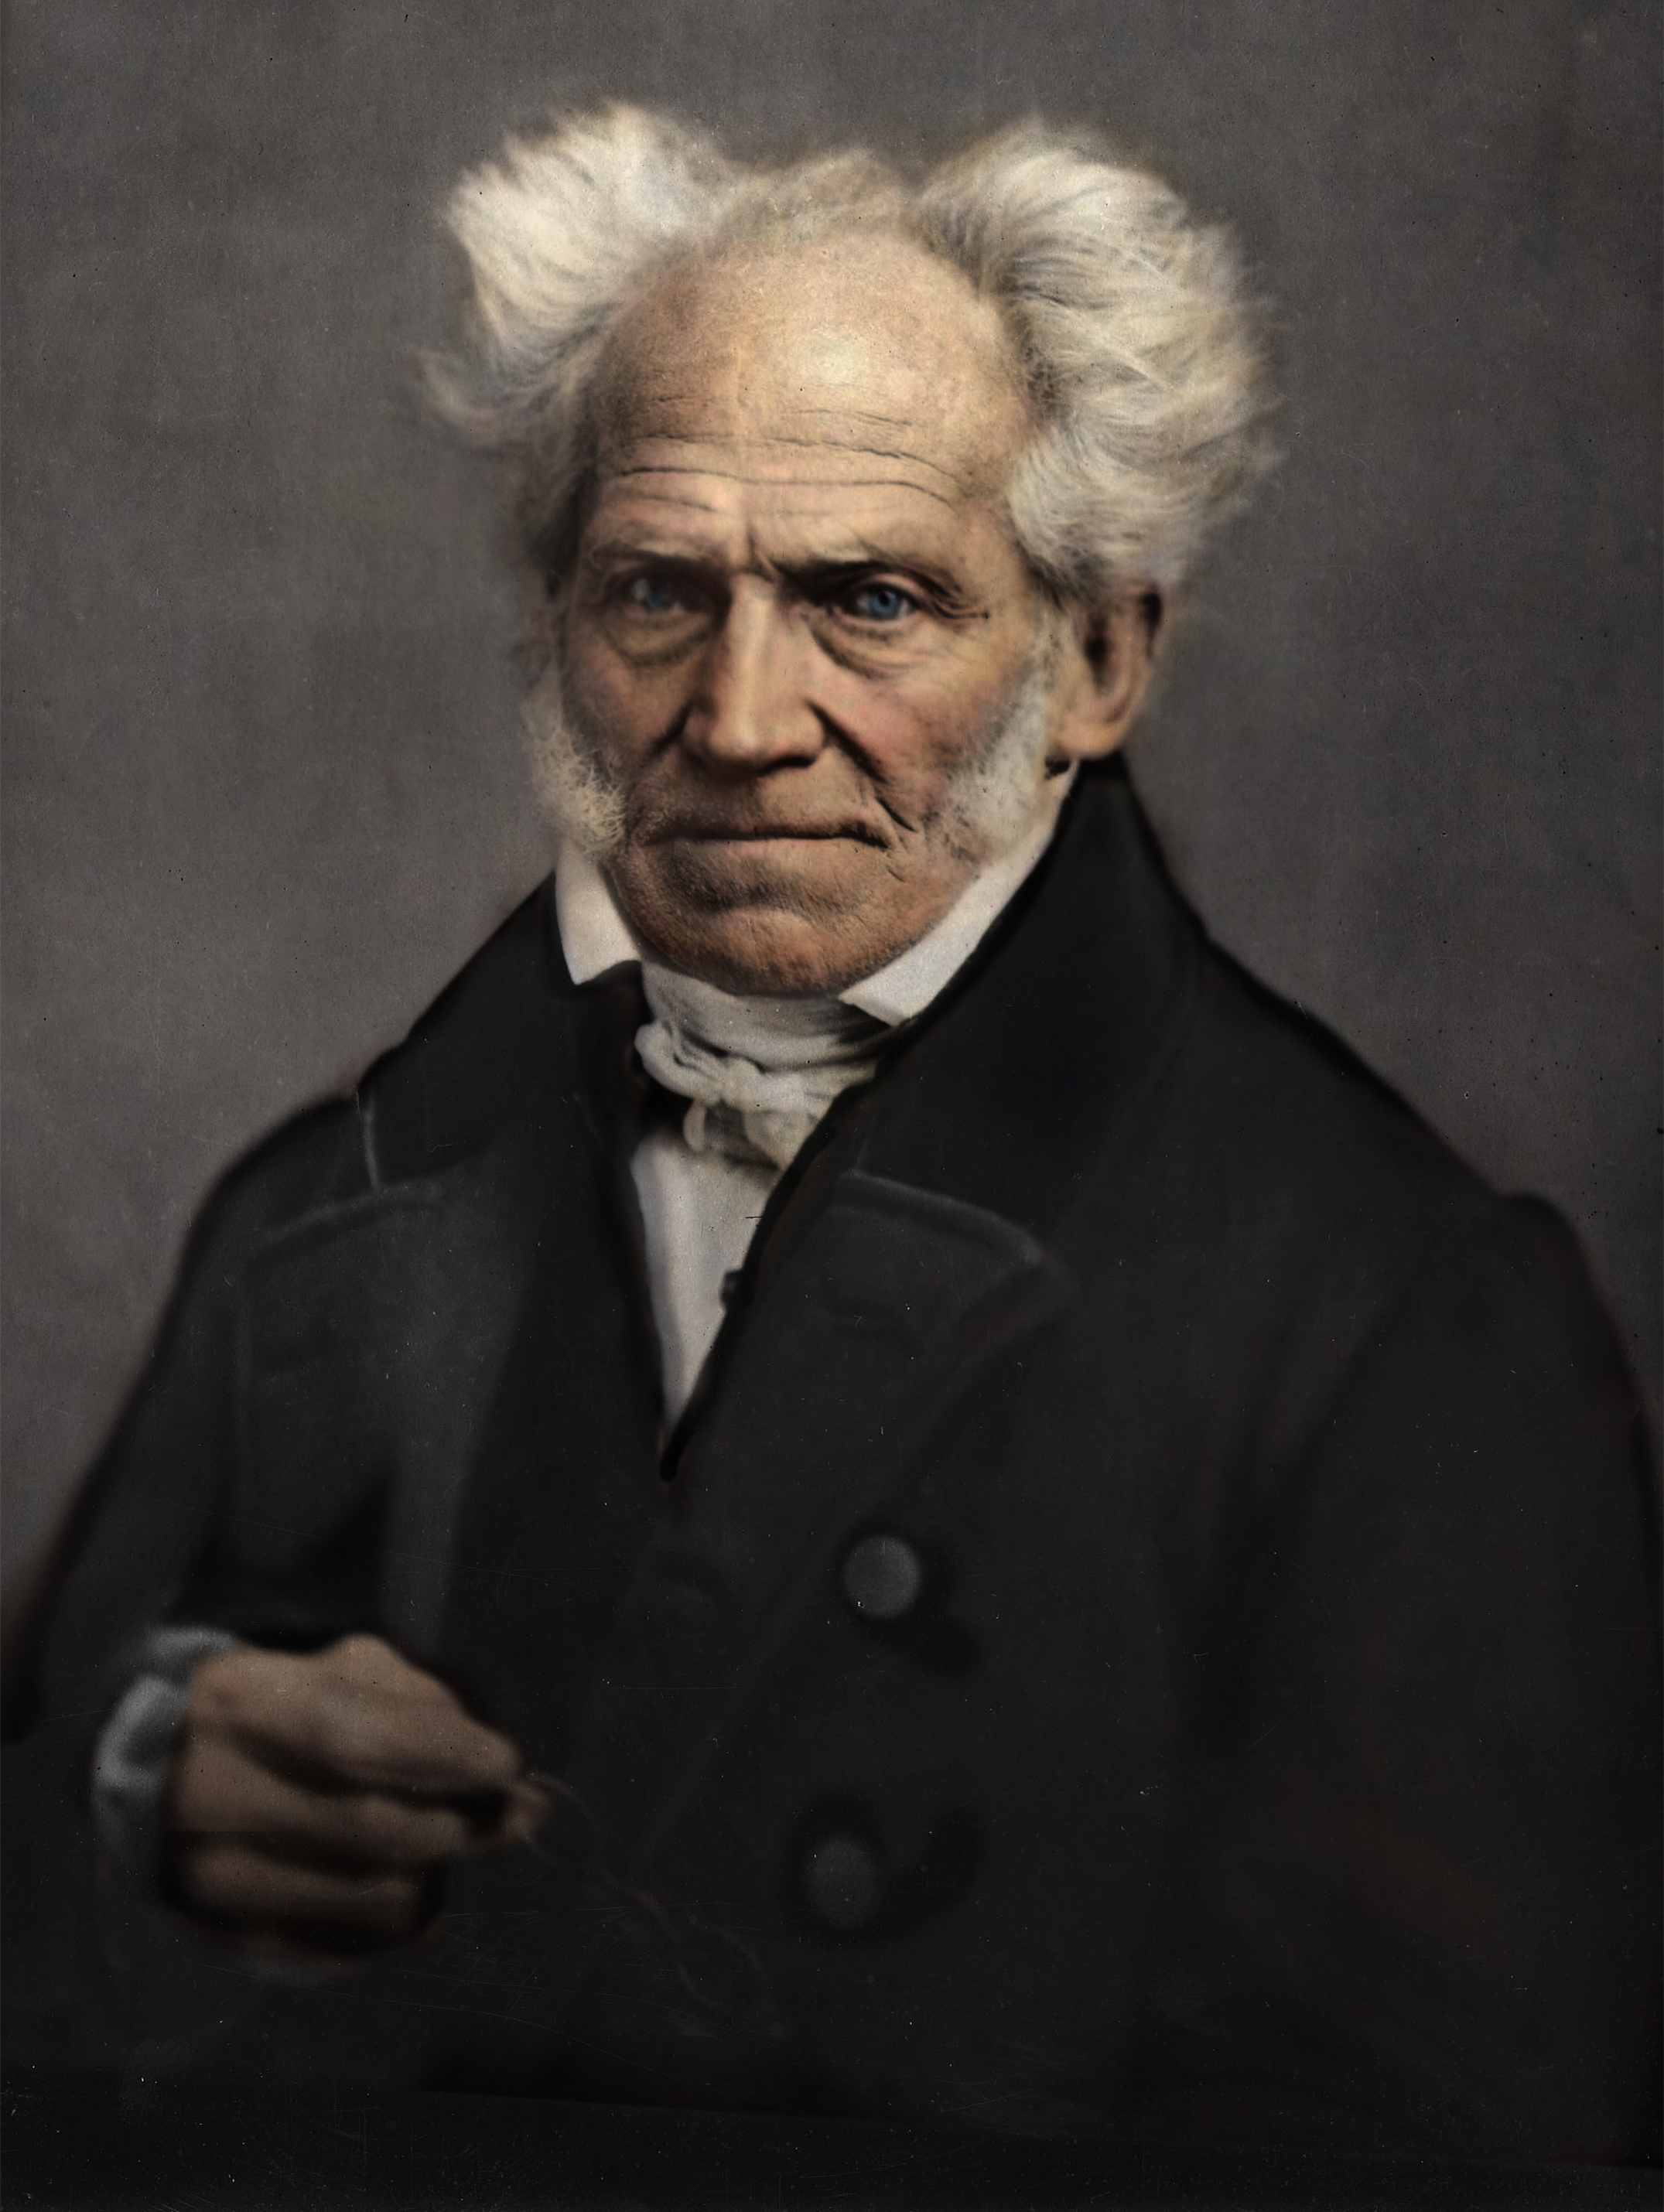 File:Arthur Schopenhauer colorized.png - Wikimedia Commons